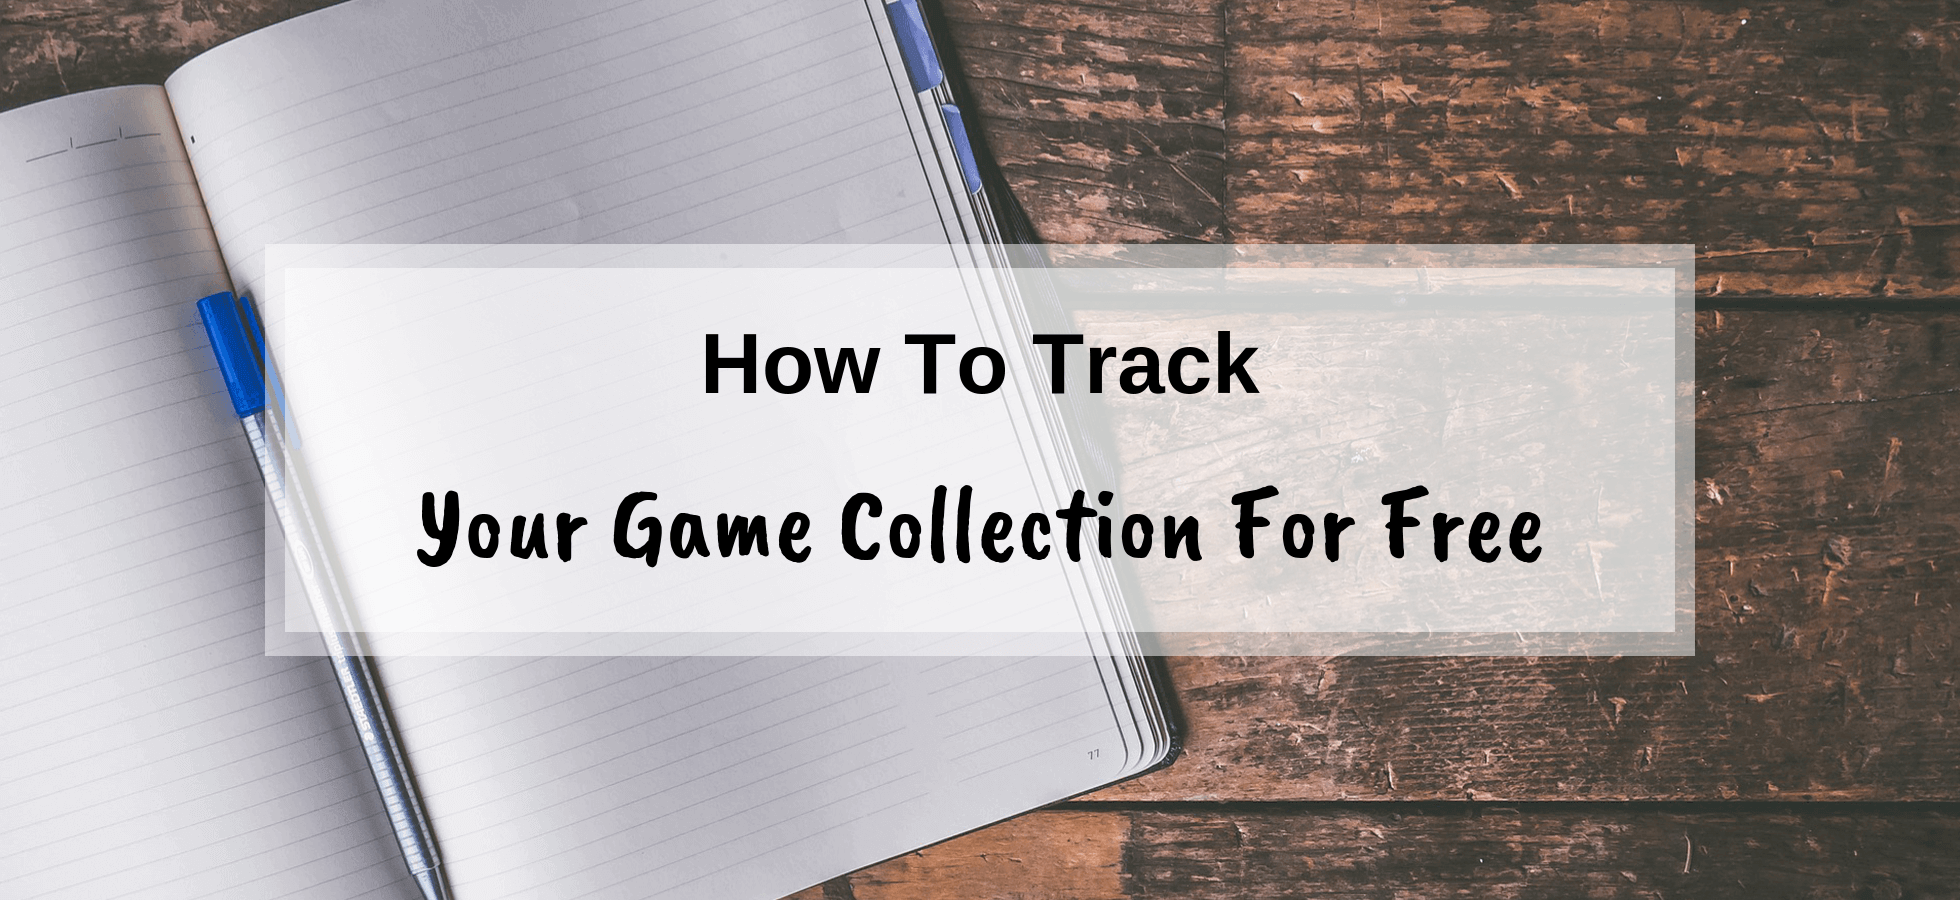 How To Track Your Game Collection For Free